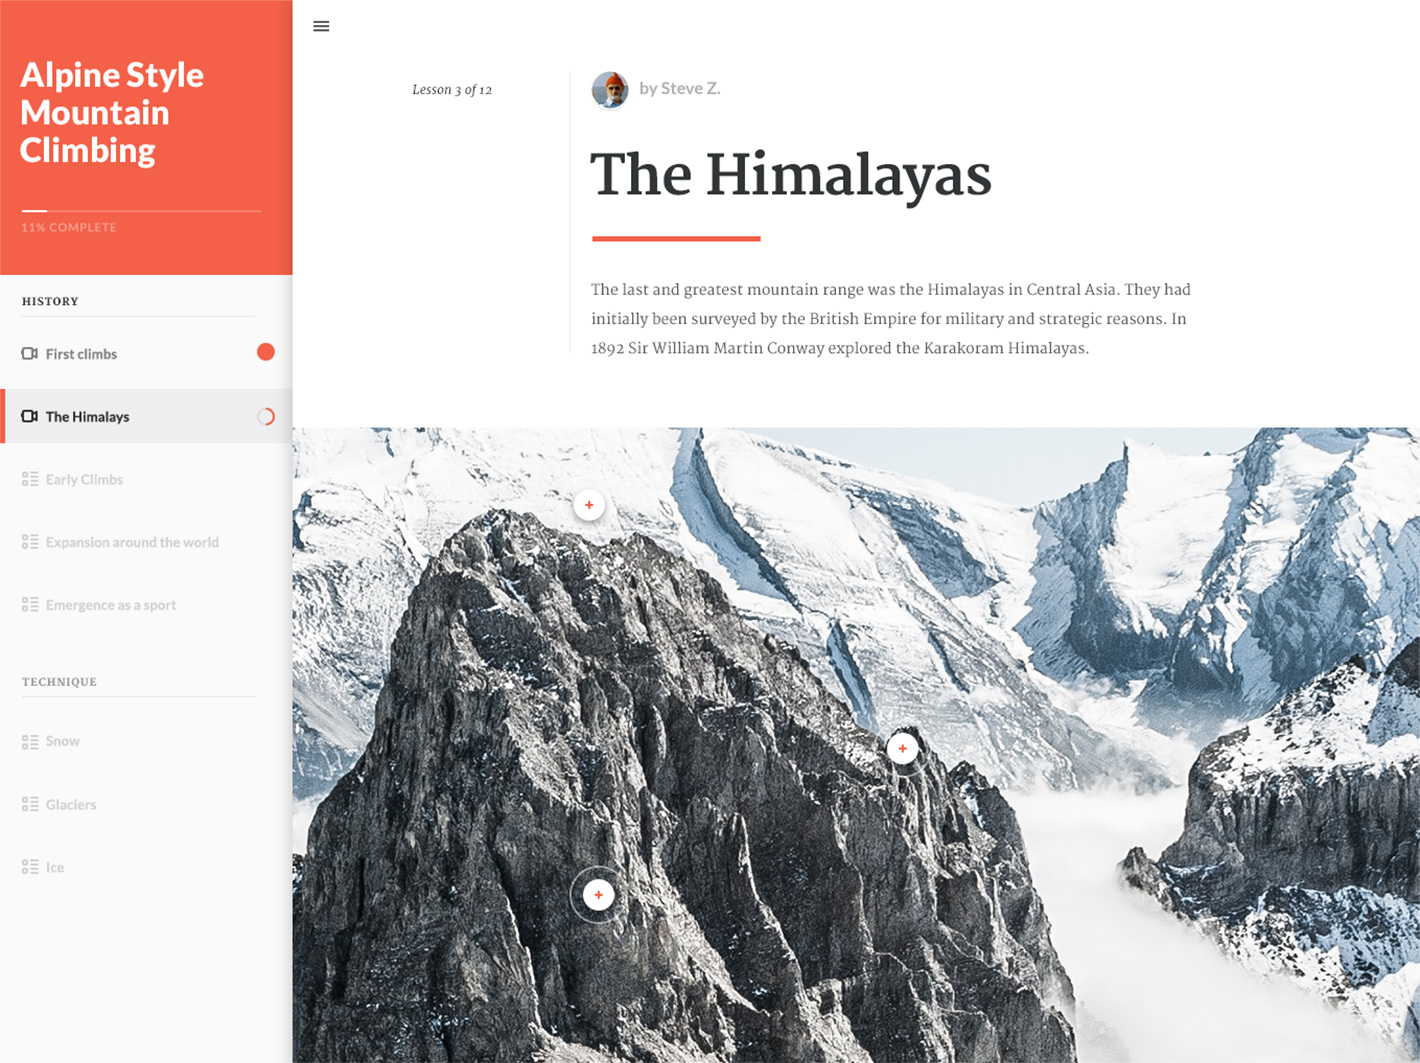 The Himalayas